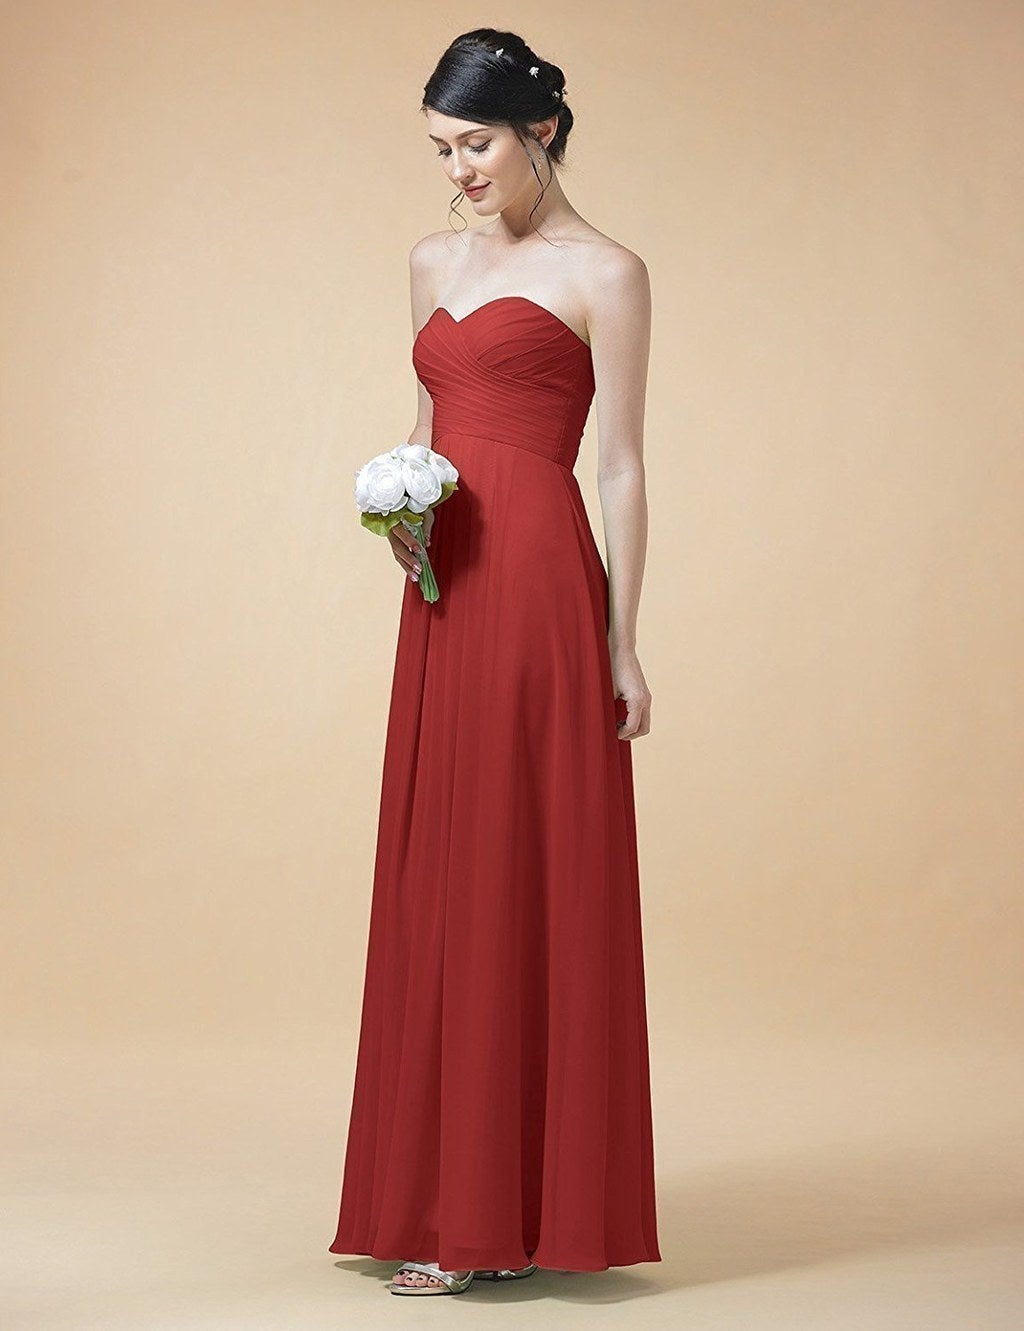 21a819d05c0 20 Bridesmaid Dresses You Can Get On Amazon That Your Friends Will ...